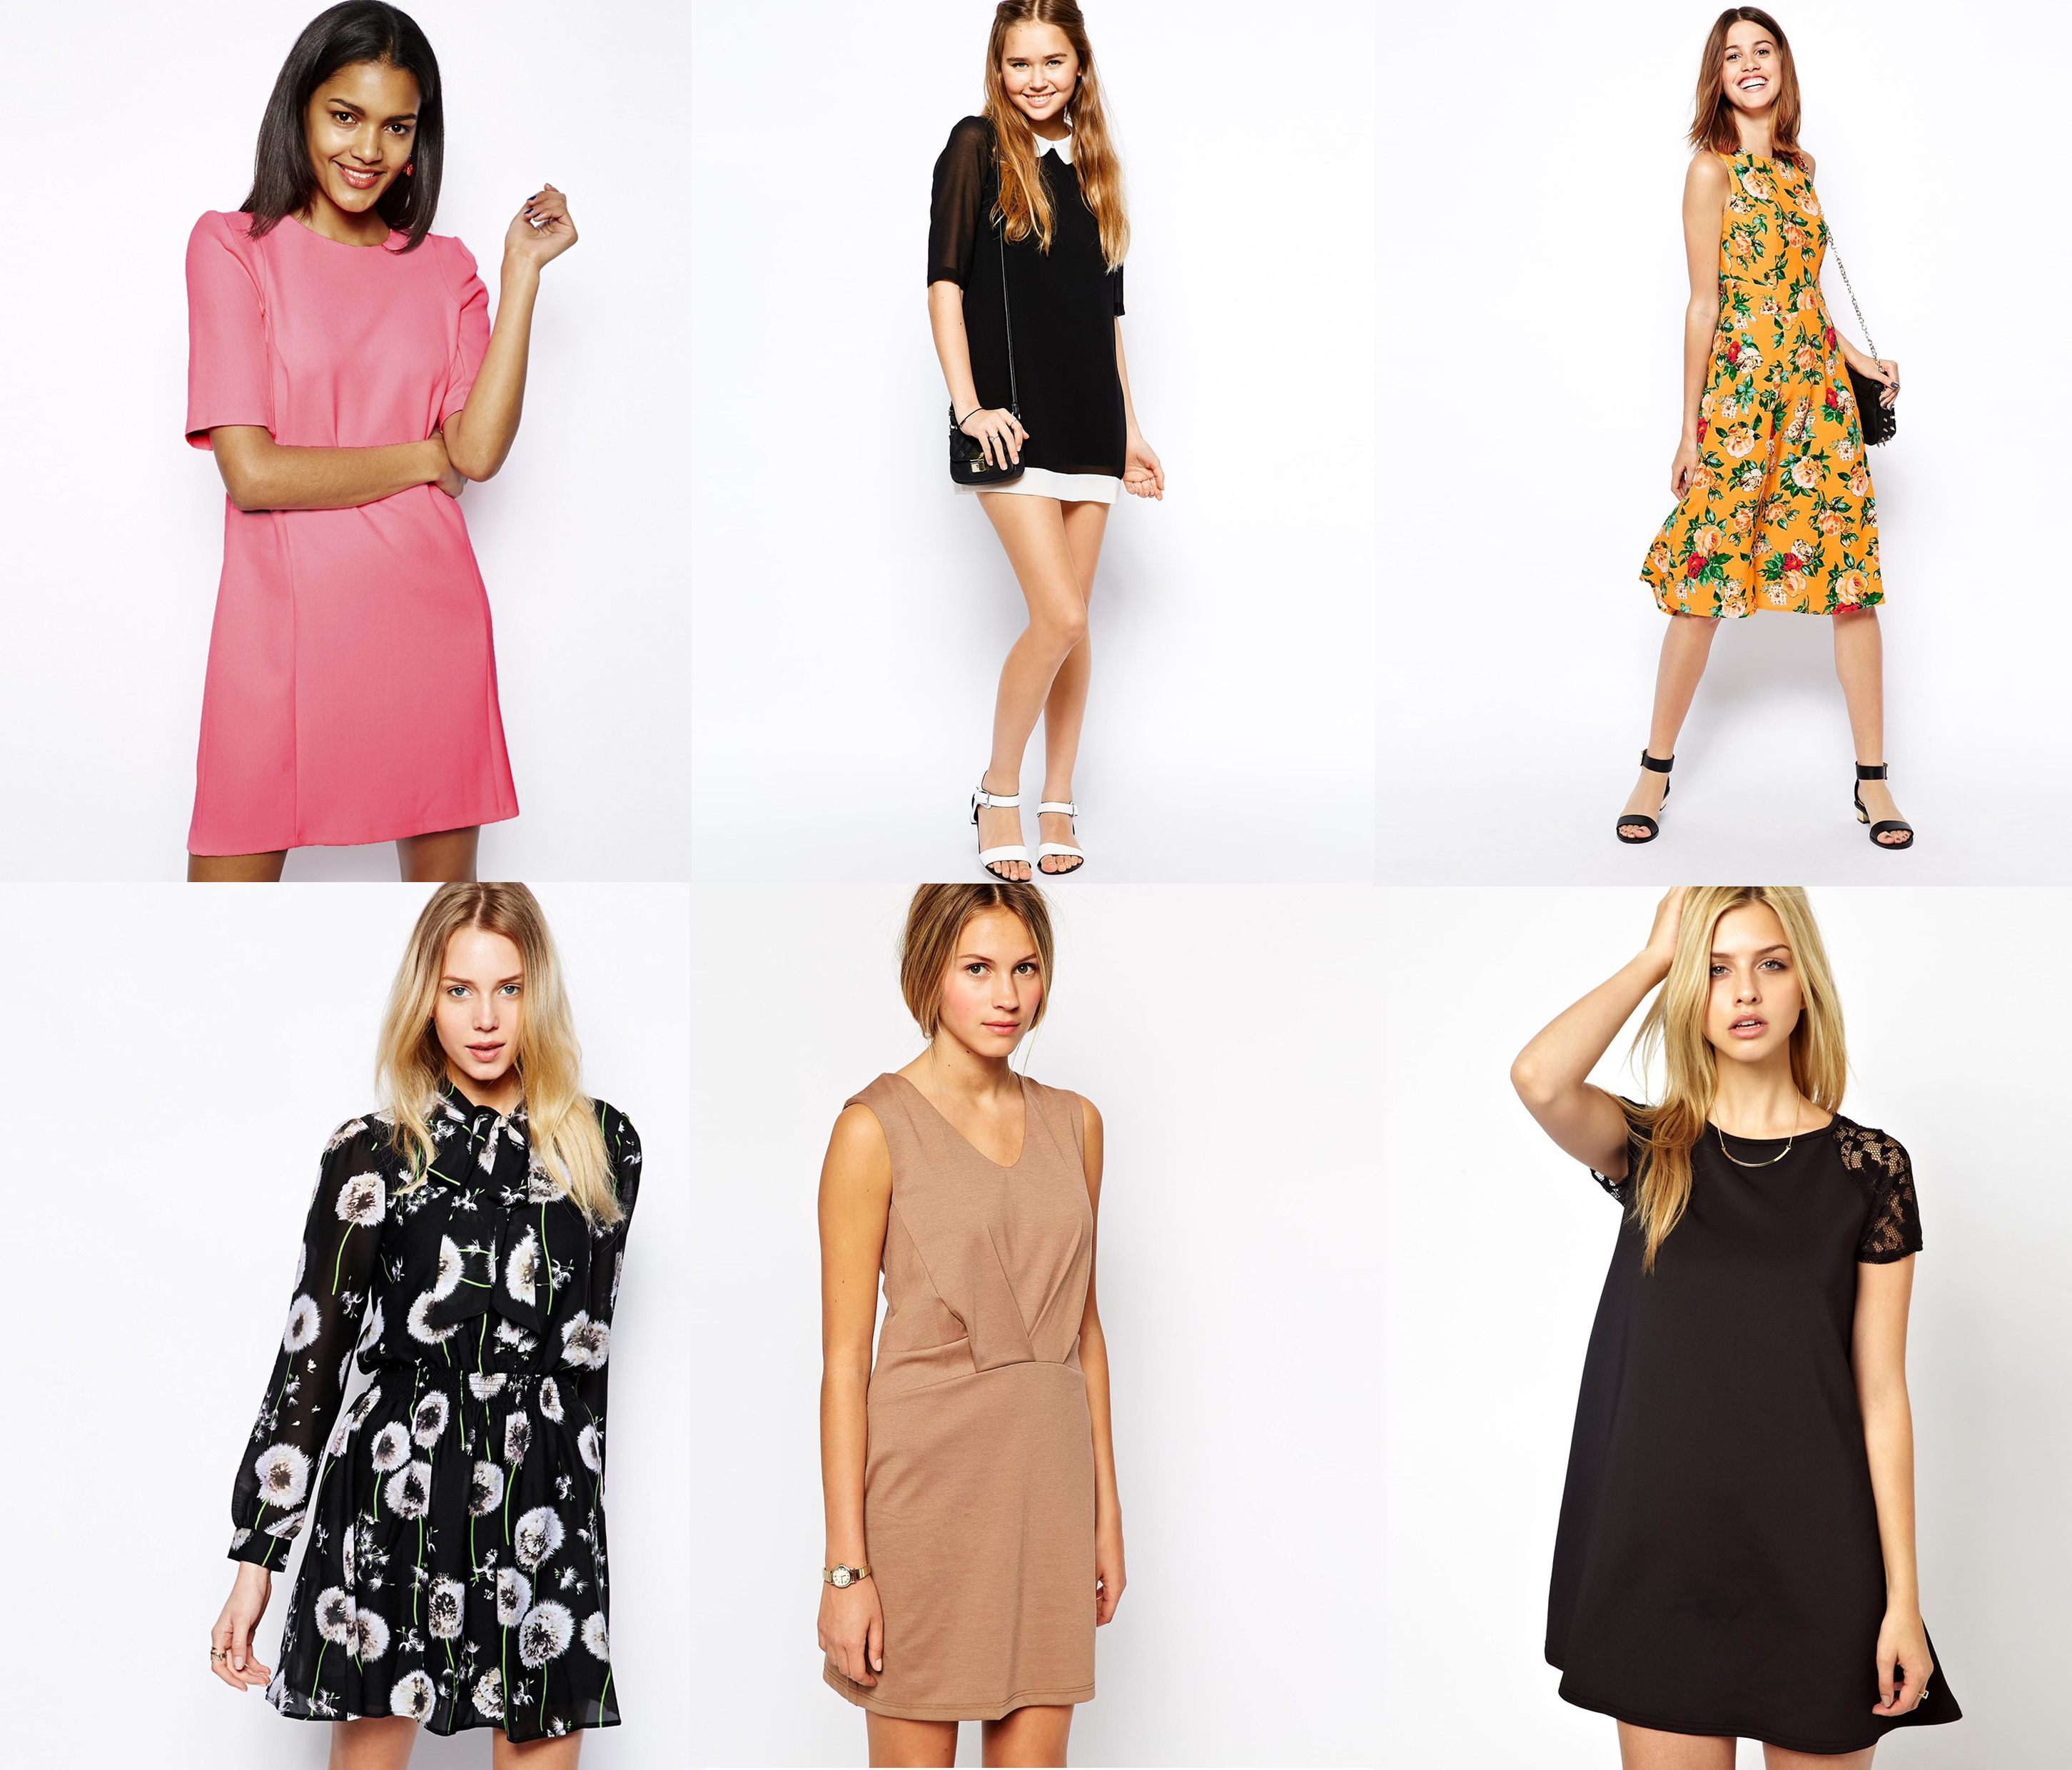 ASOS Sale Dresses